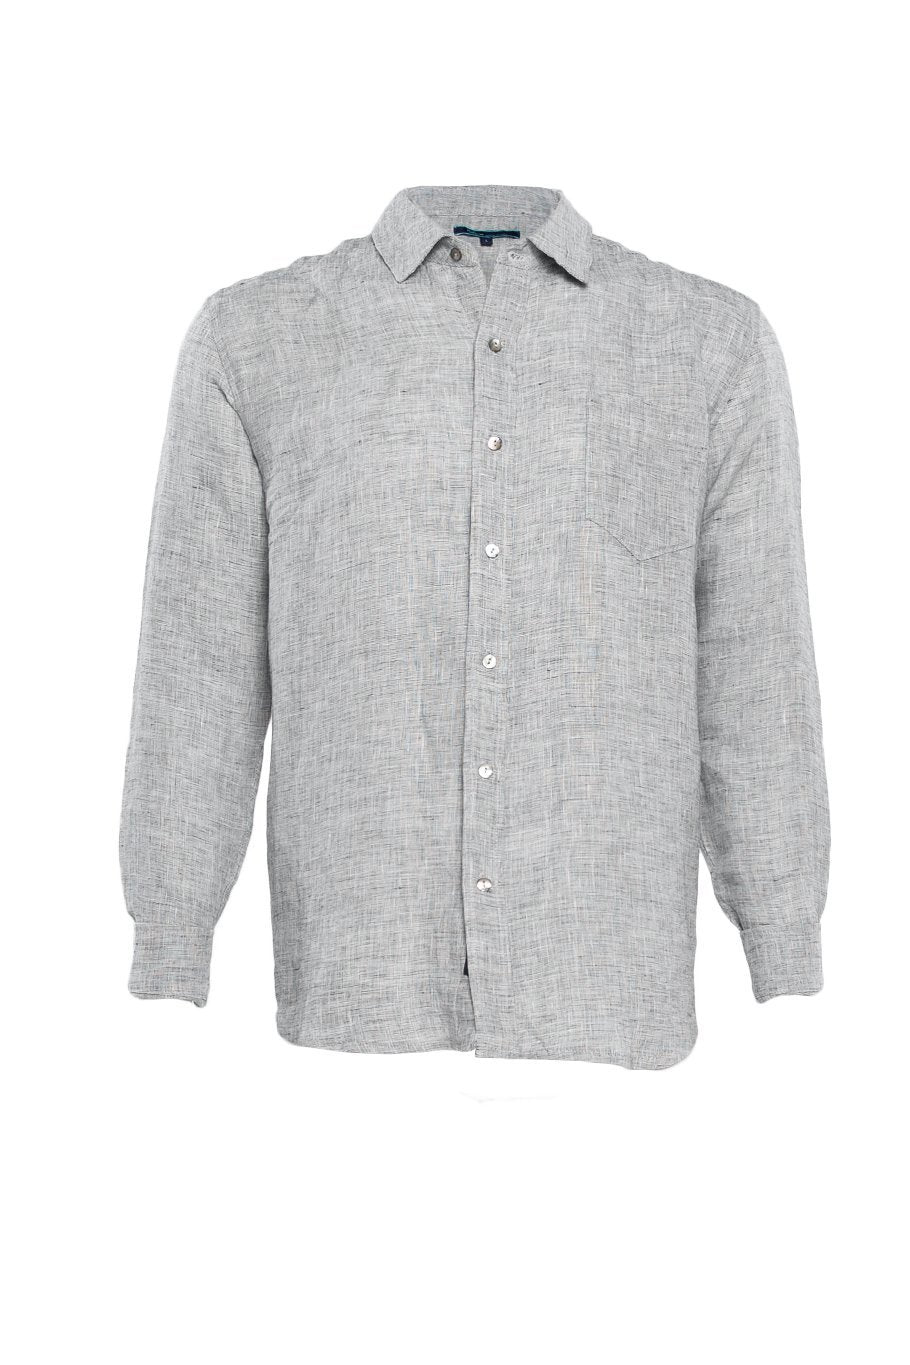 Linen Button Up Shirt - Salt & Pepper